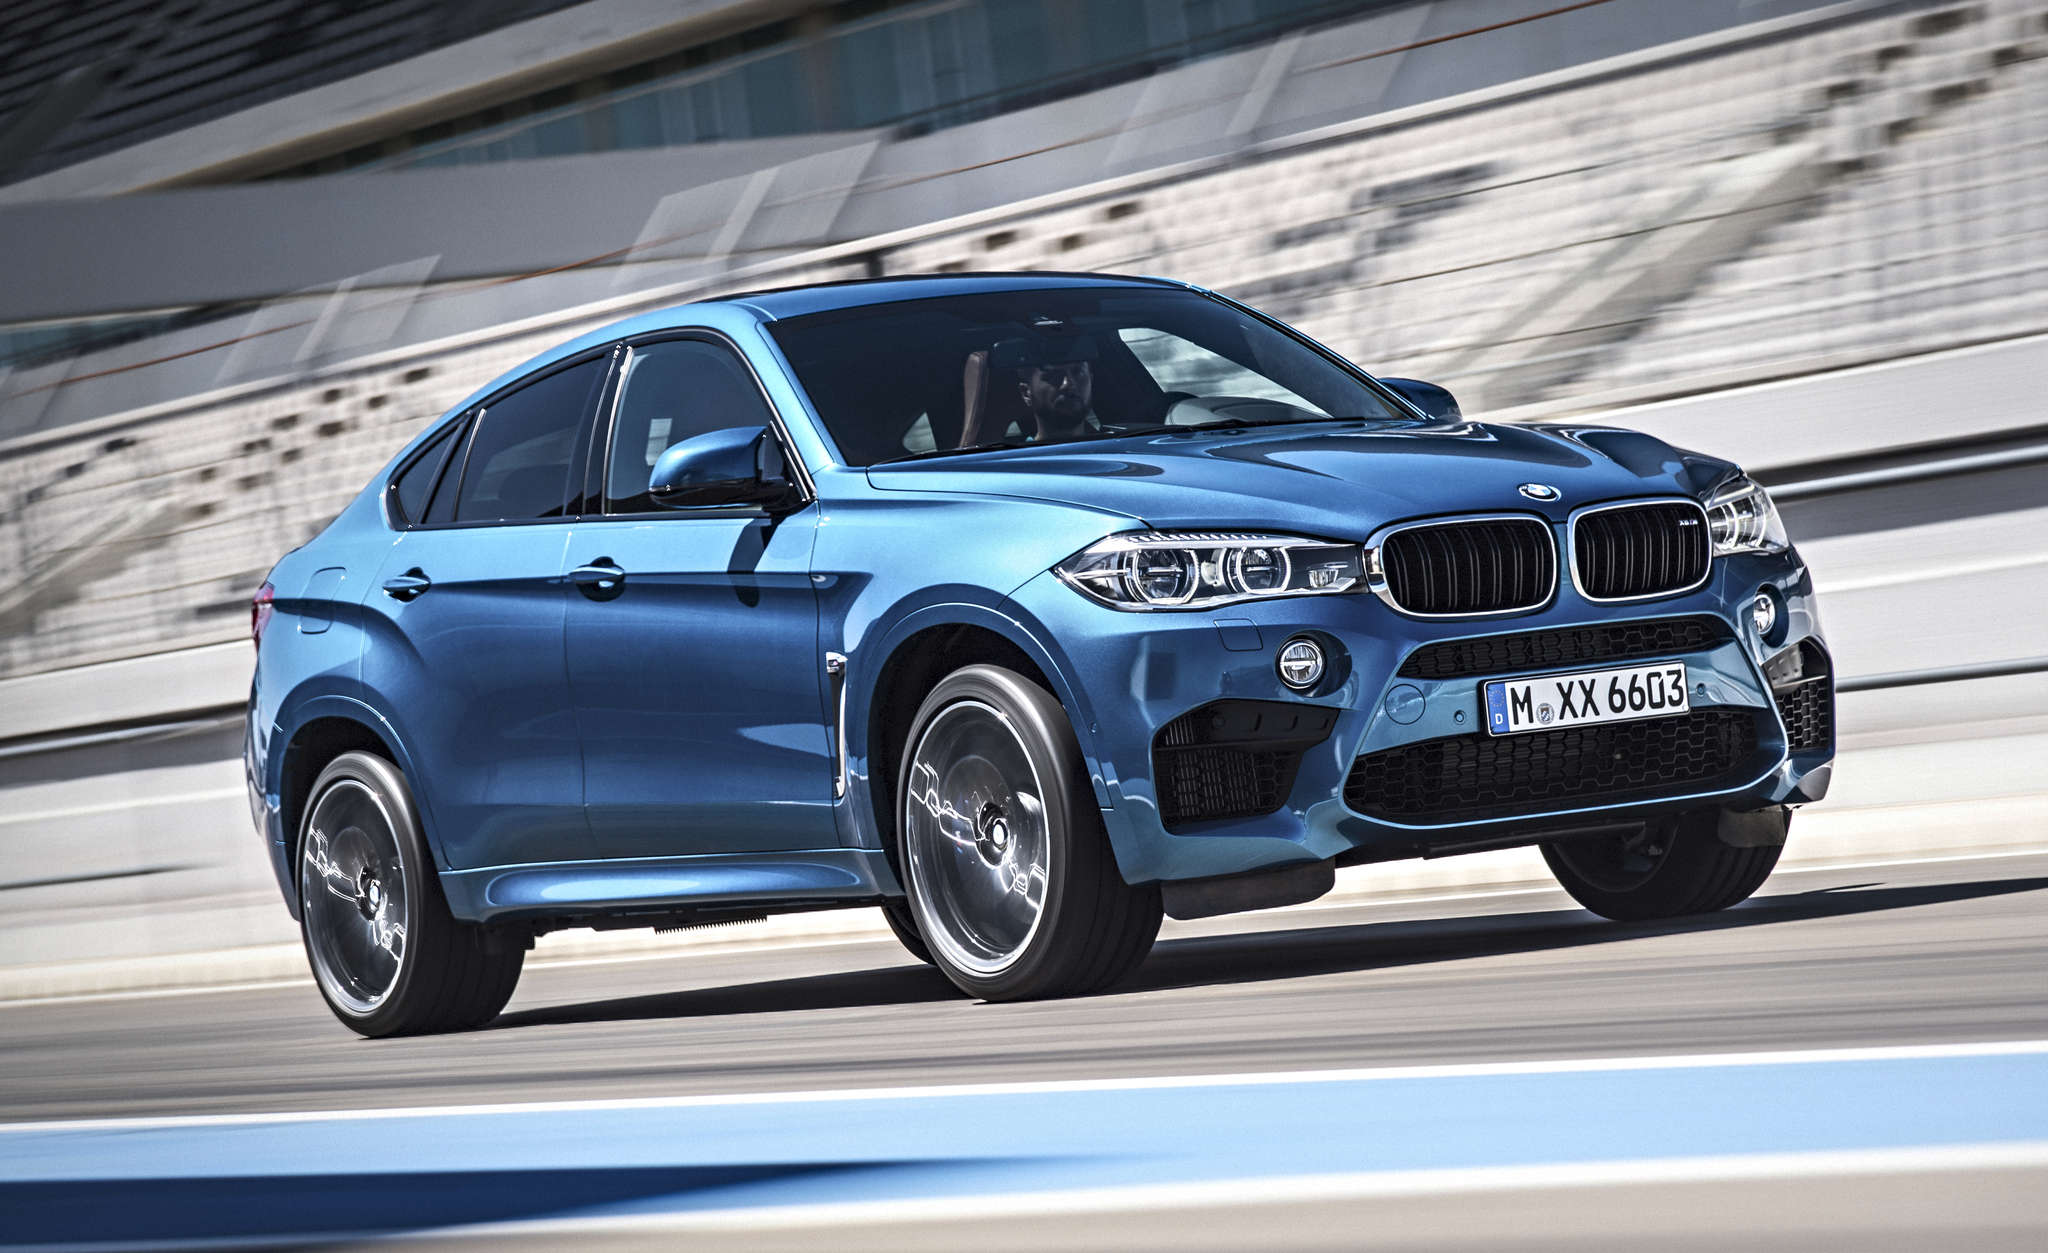 The 2015 BMW X6M sports activity vehicle combines some of the best elements of an SUV with the handling of a sports car.